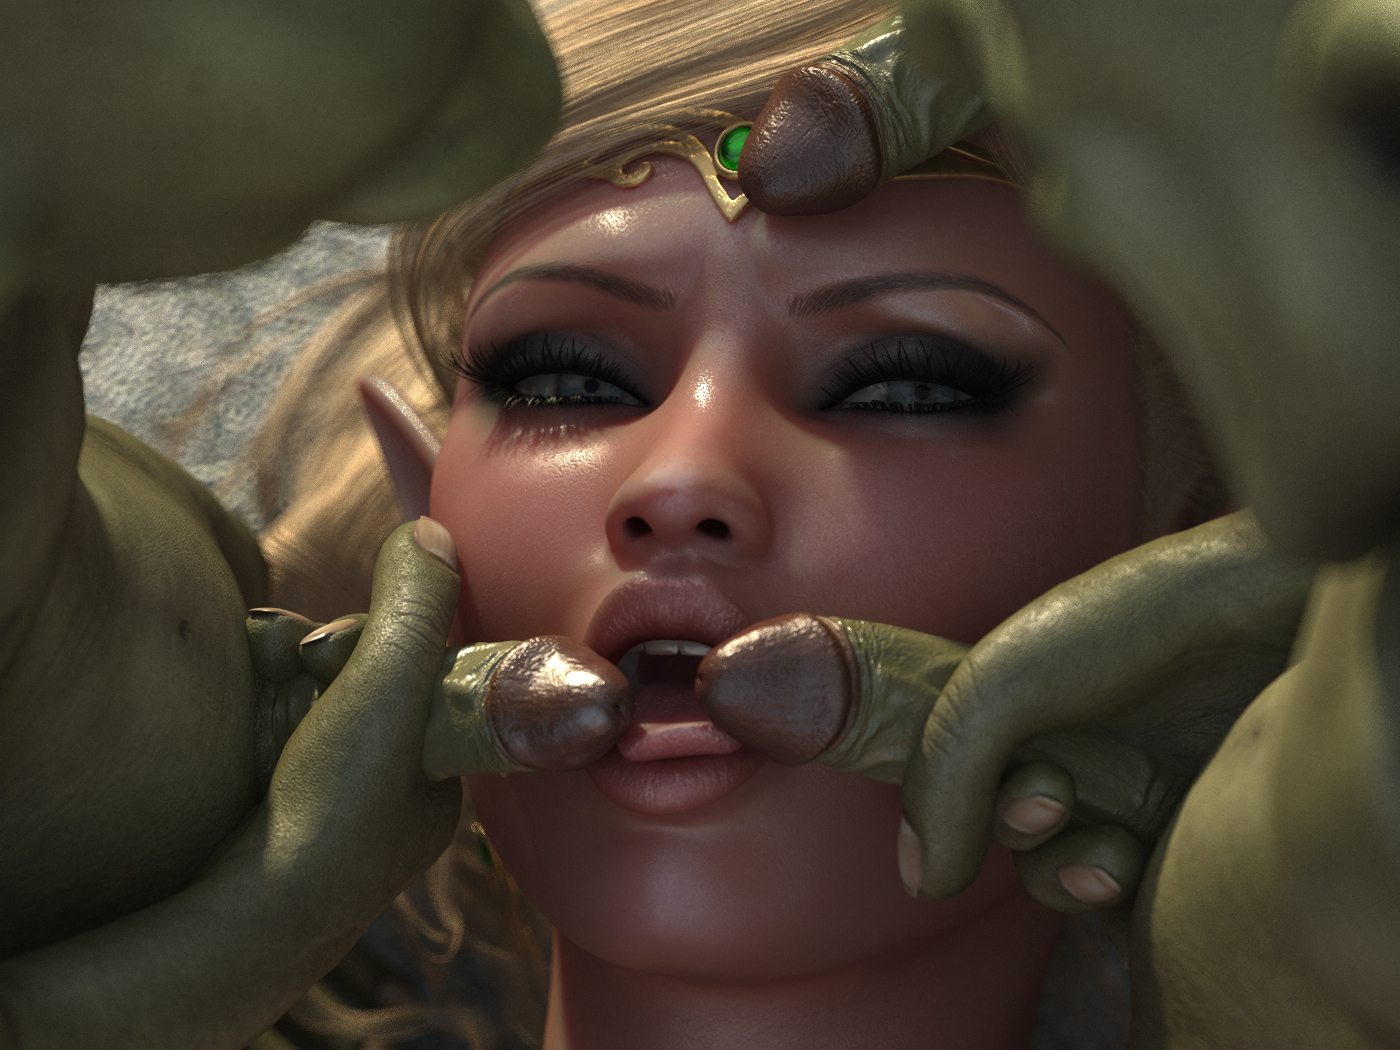 World of warcraft goblin gang bang hentai gallery